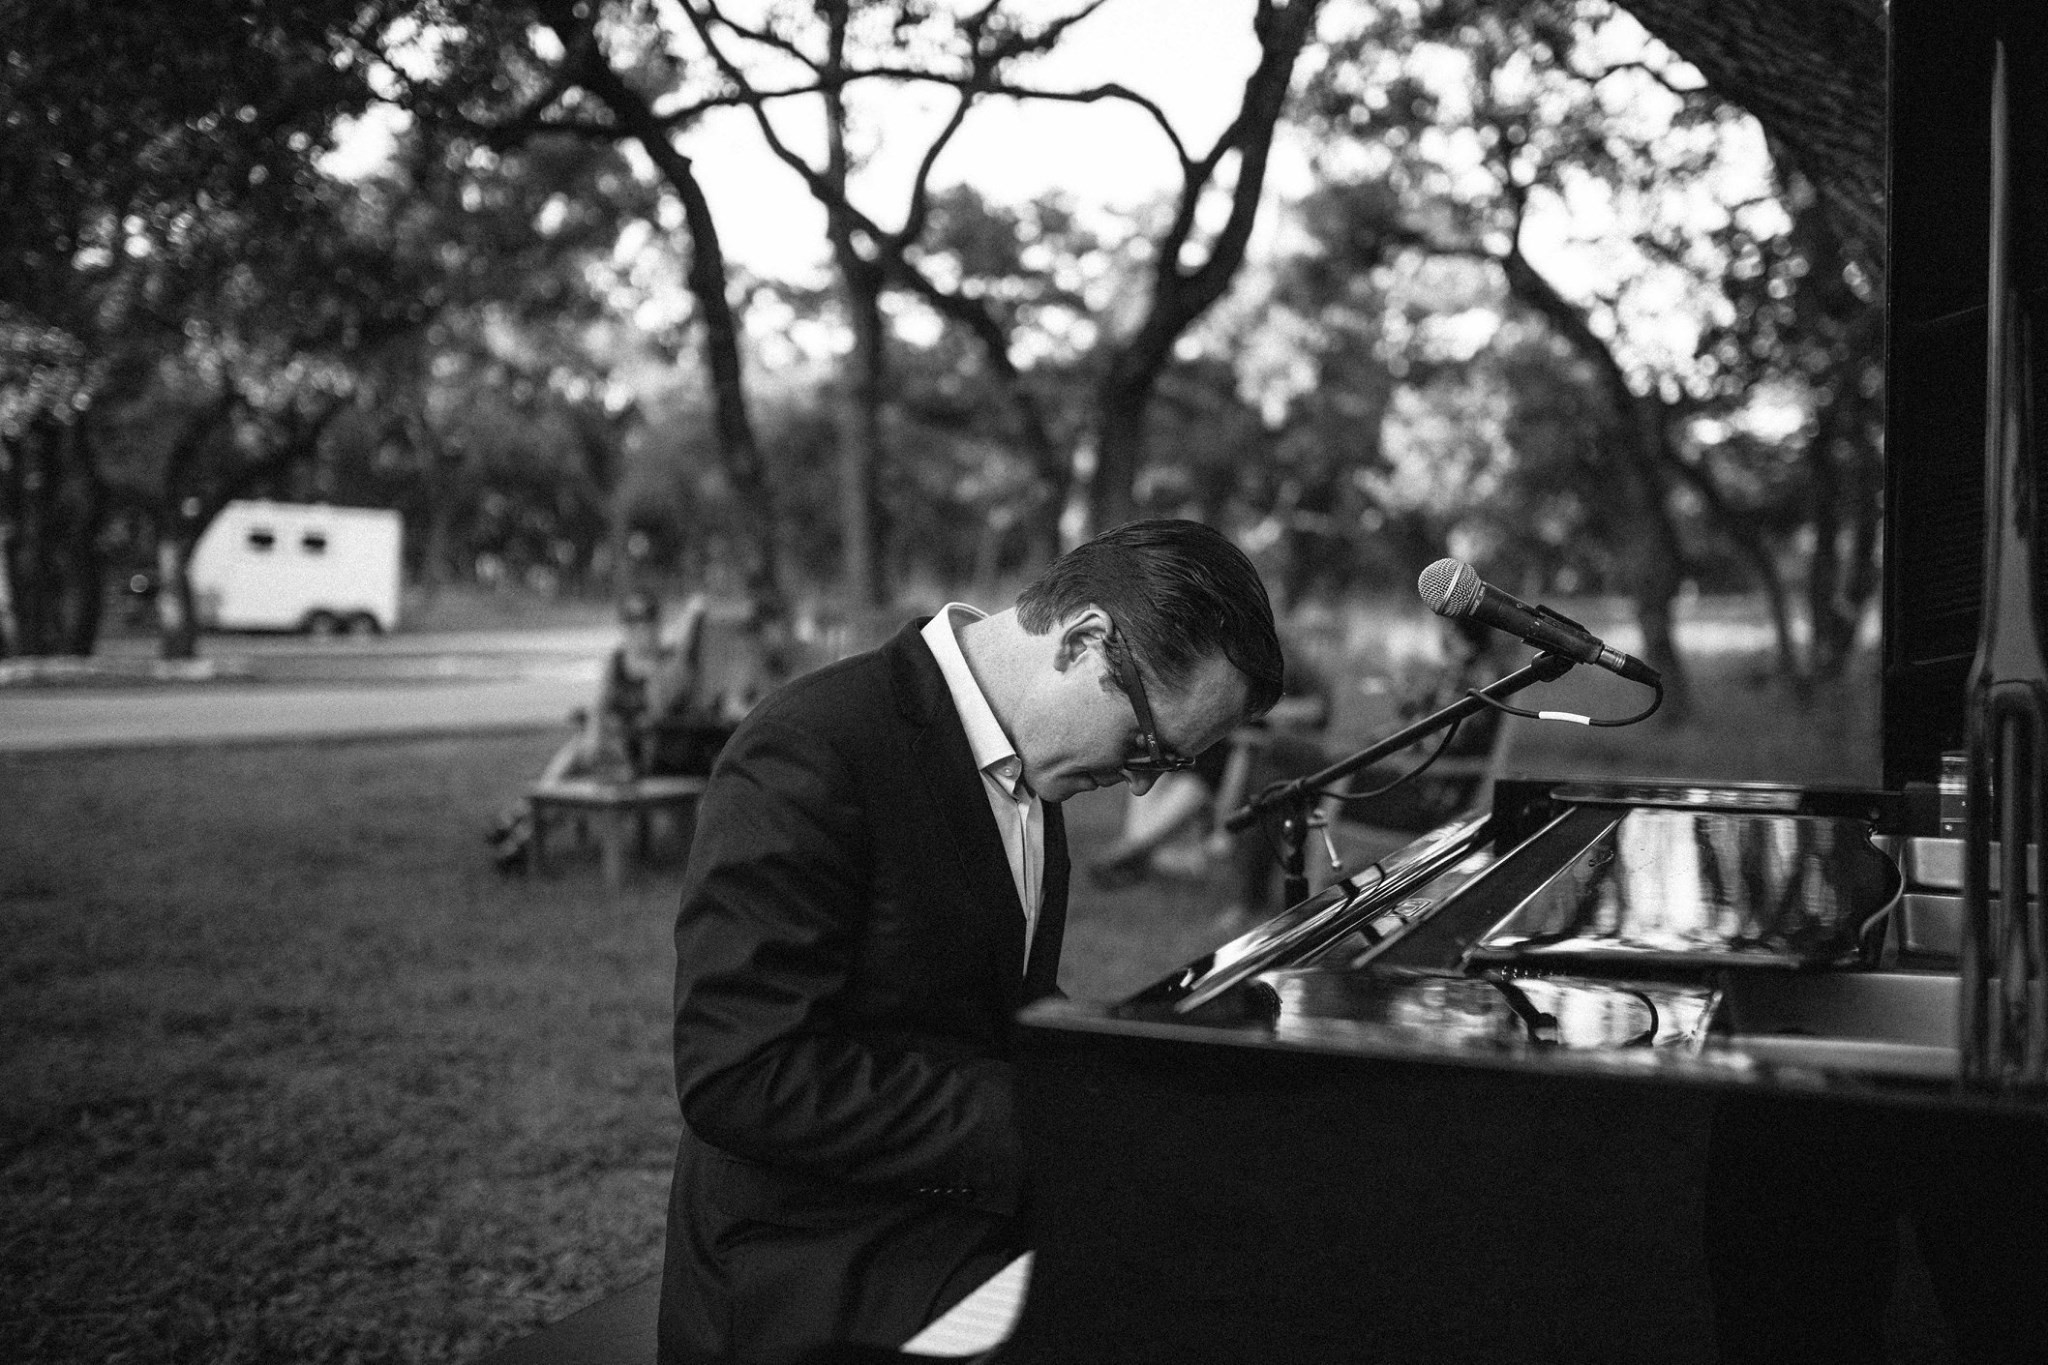 Doc Watkins plays the piano at a sneak peek for his club Jazz, TX. Photo courtesy of Doc Watkins.